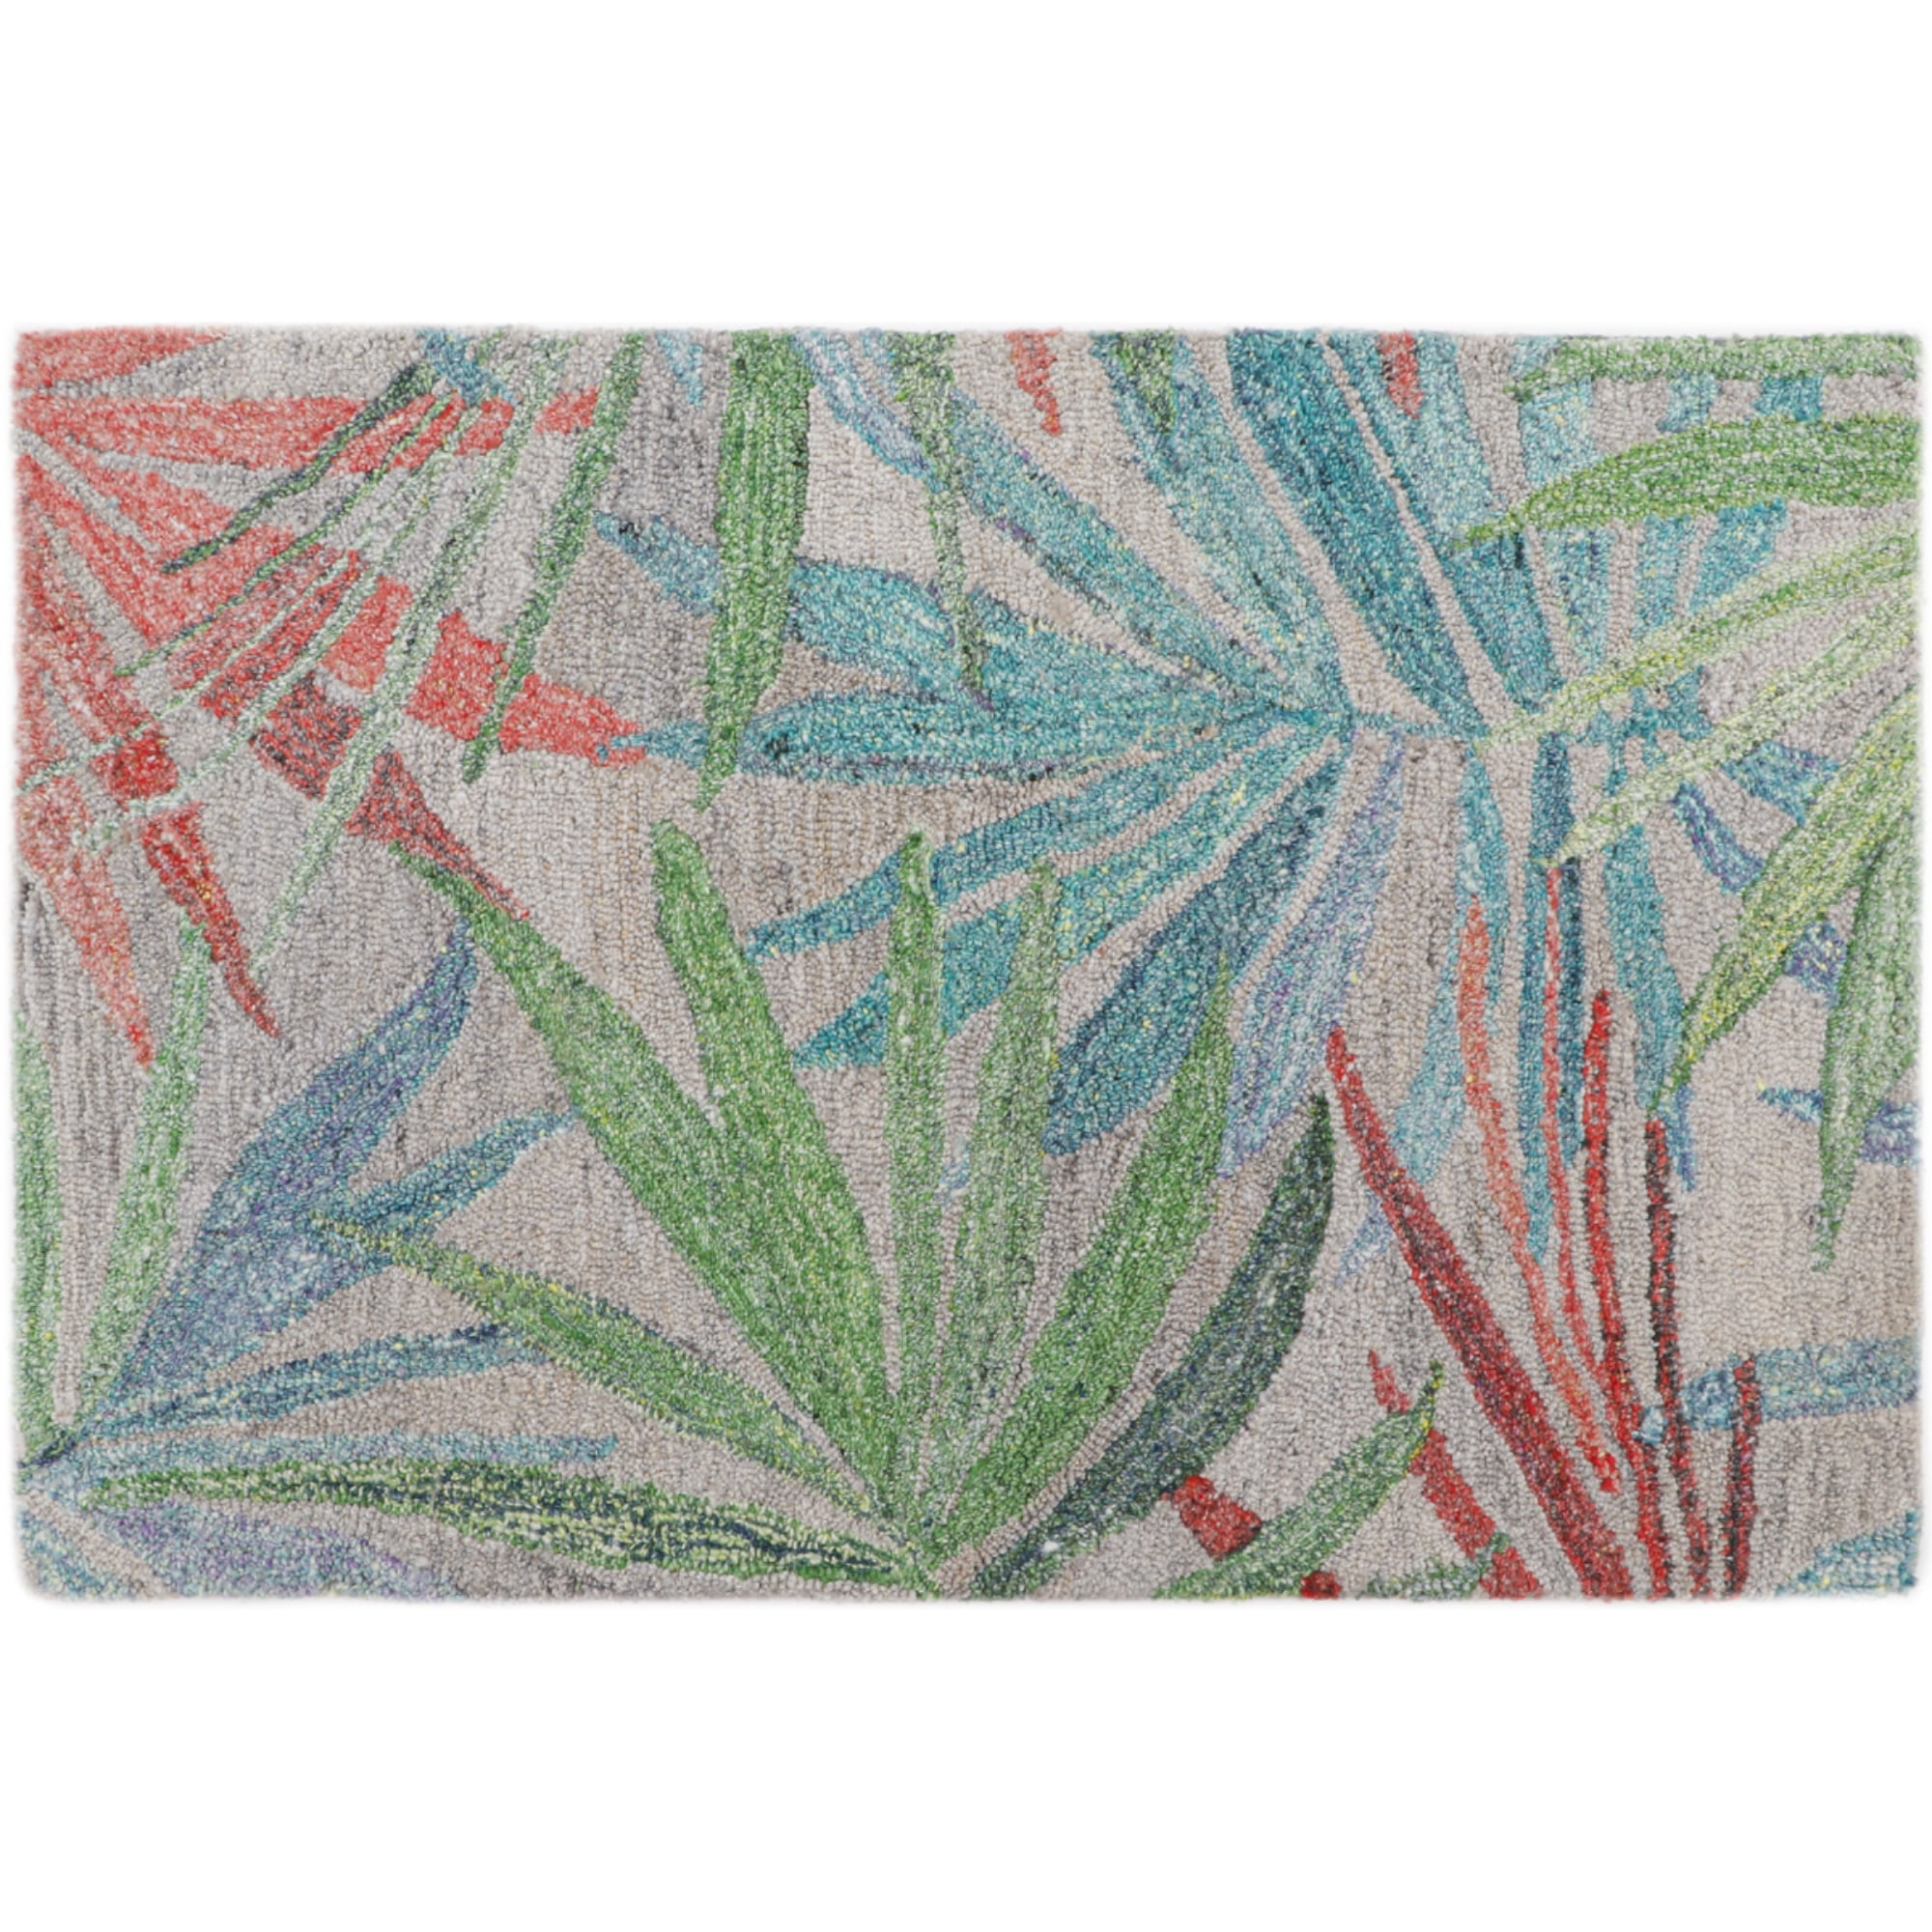 Palm Party Rug image 4